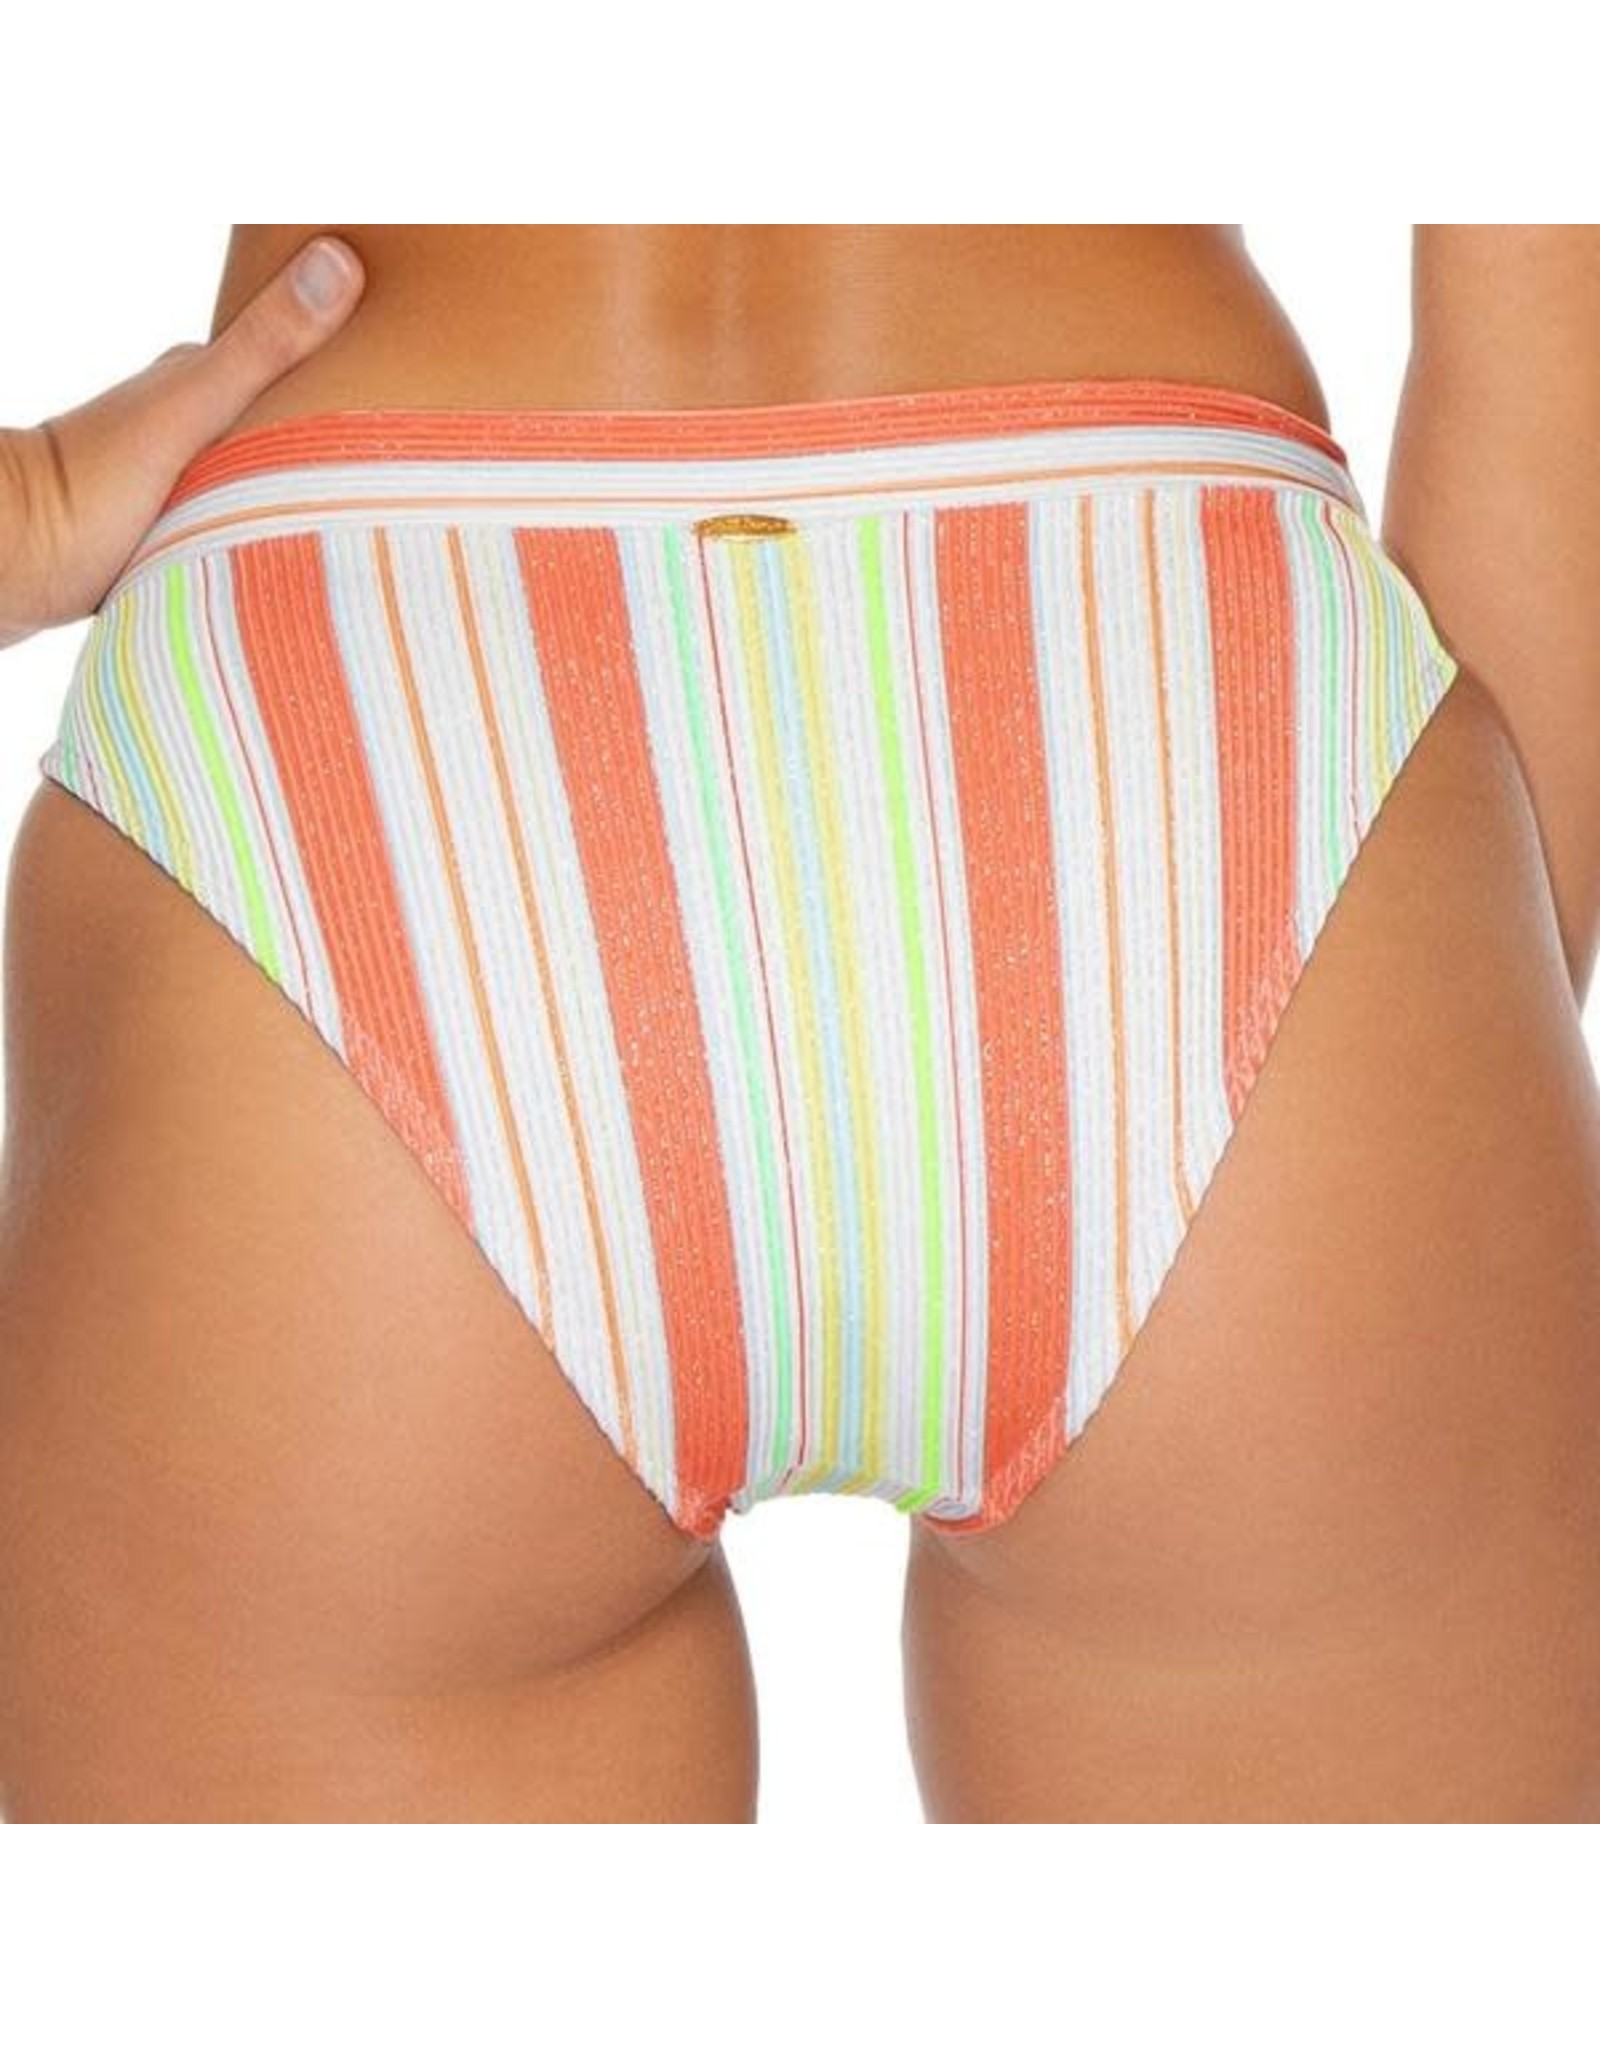 Luli Fama Play Time High Leg Banded Bottom